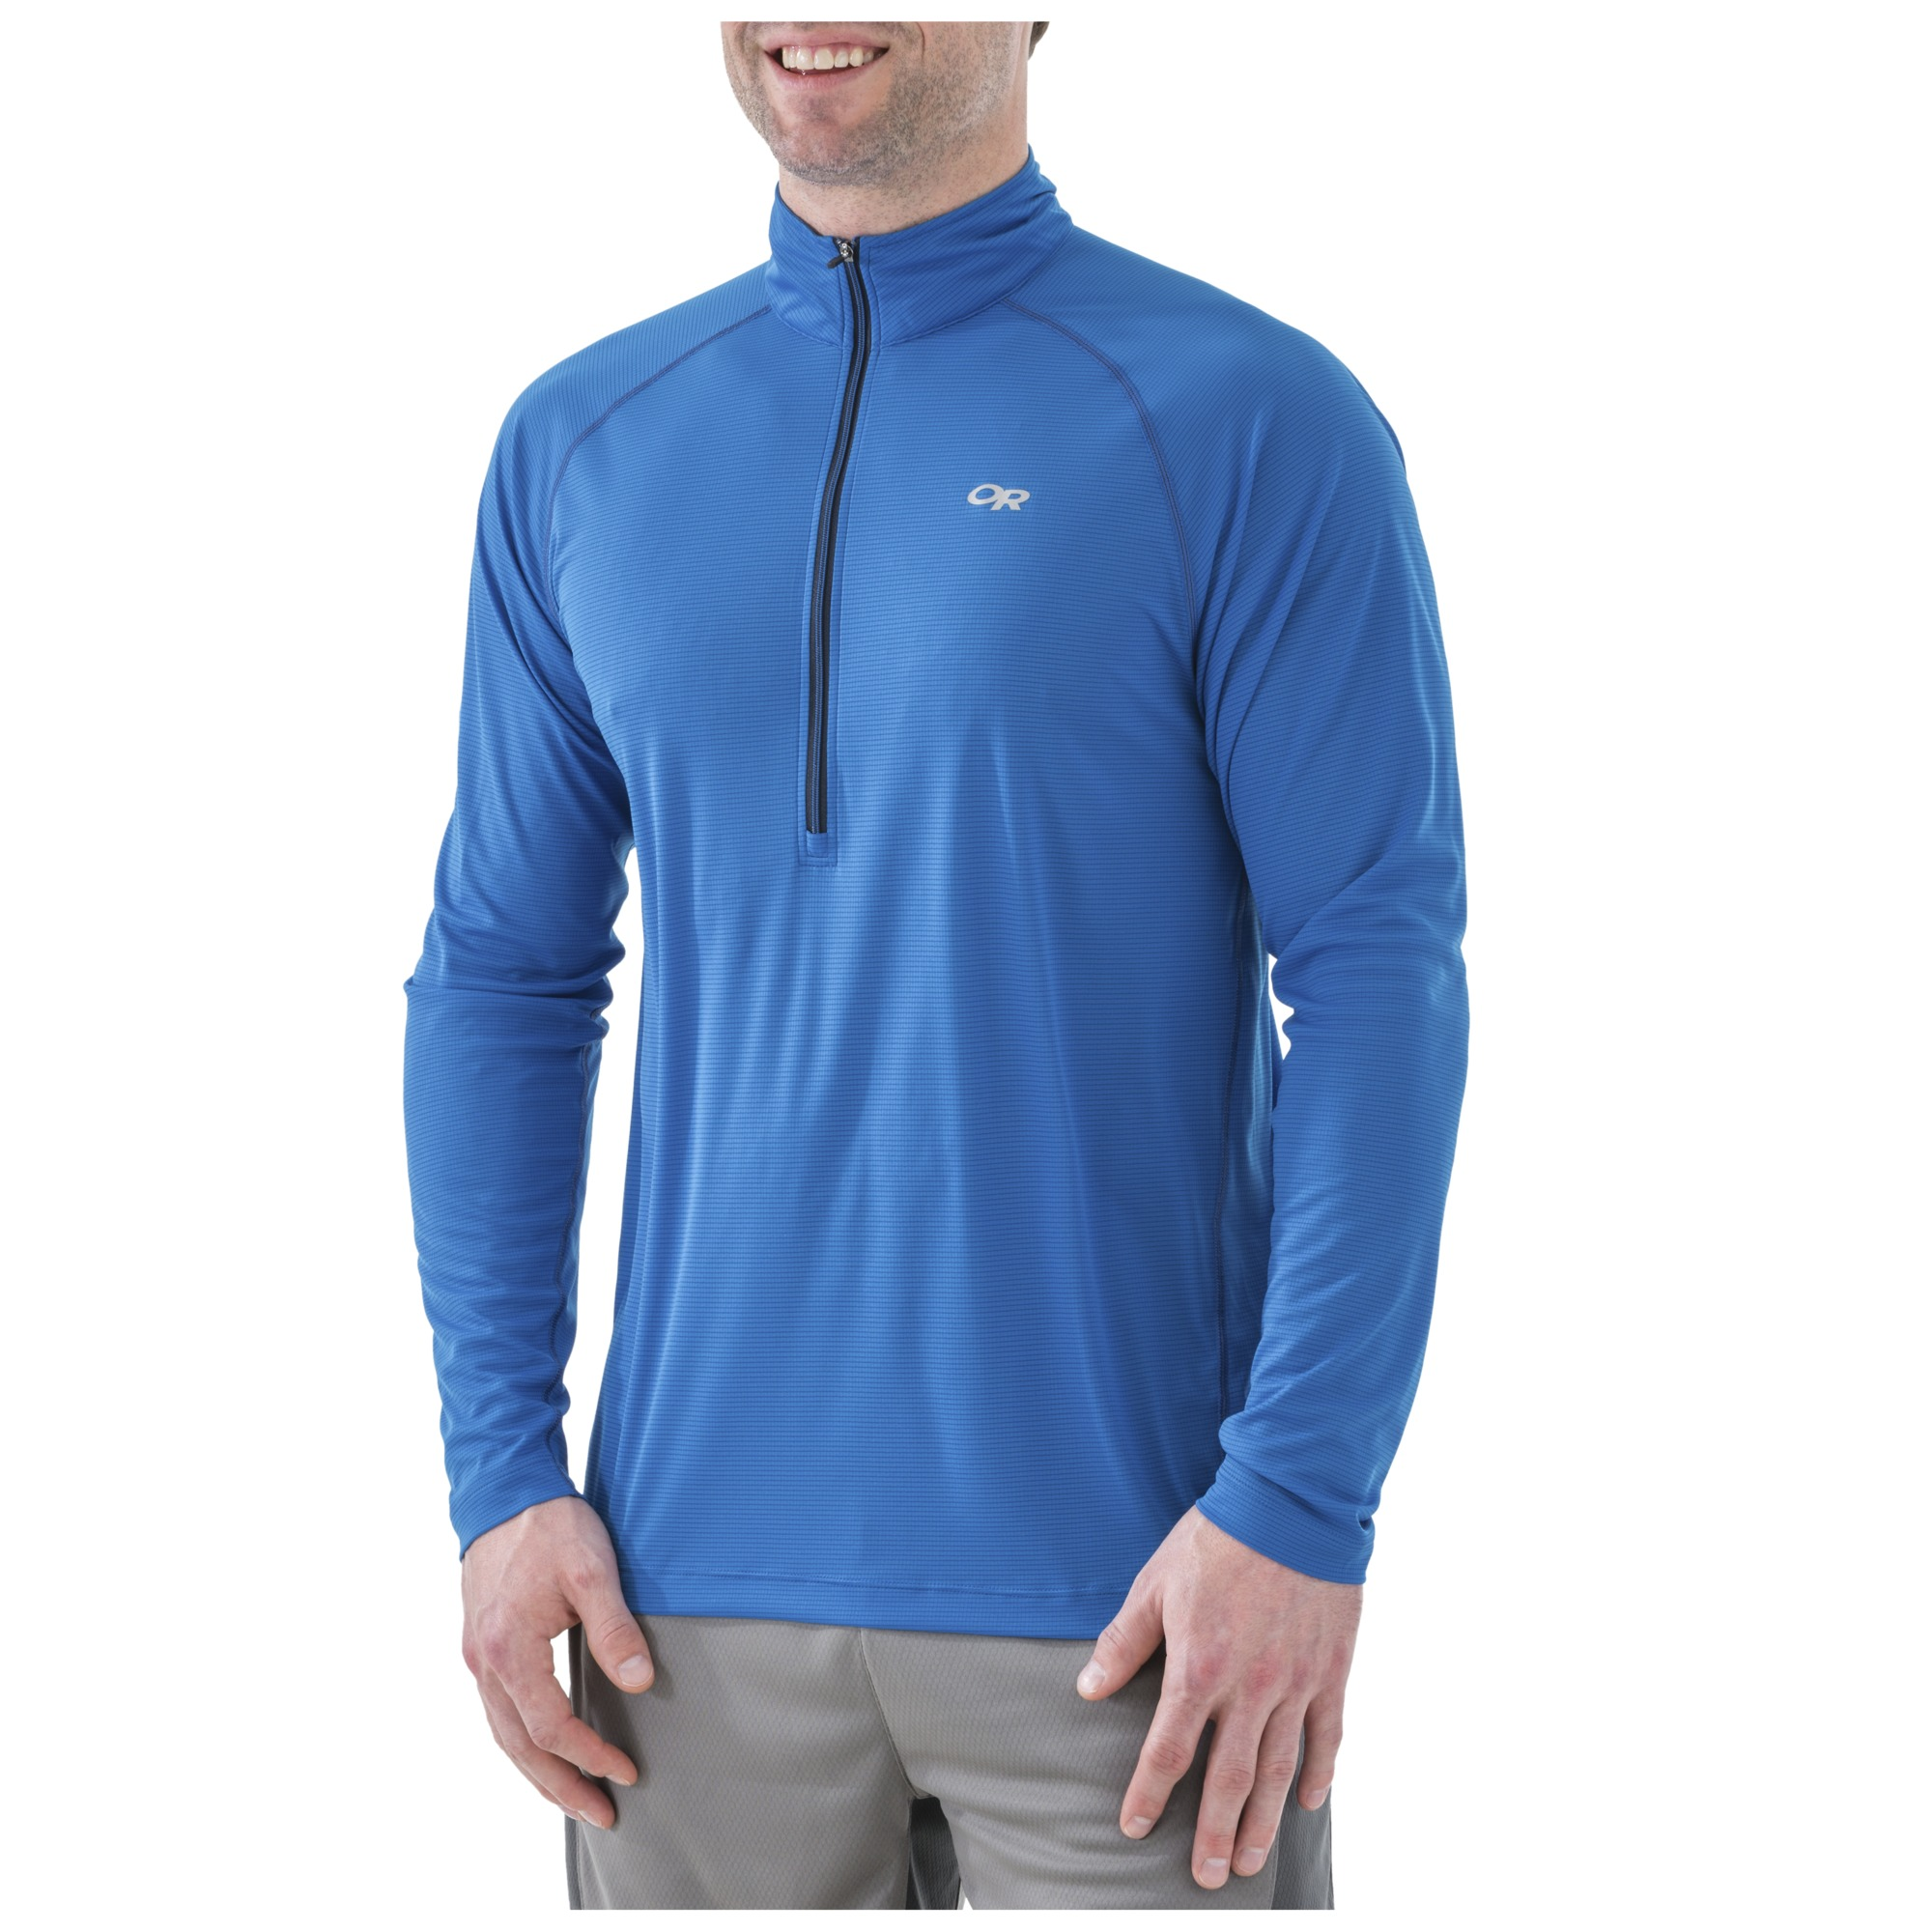 2439d9eb6f3ec Men's Echo L/S Zip Tee - jolt/pewter | Outdoor Research